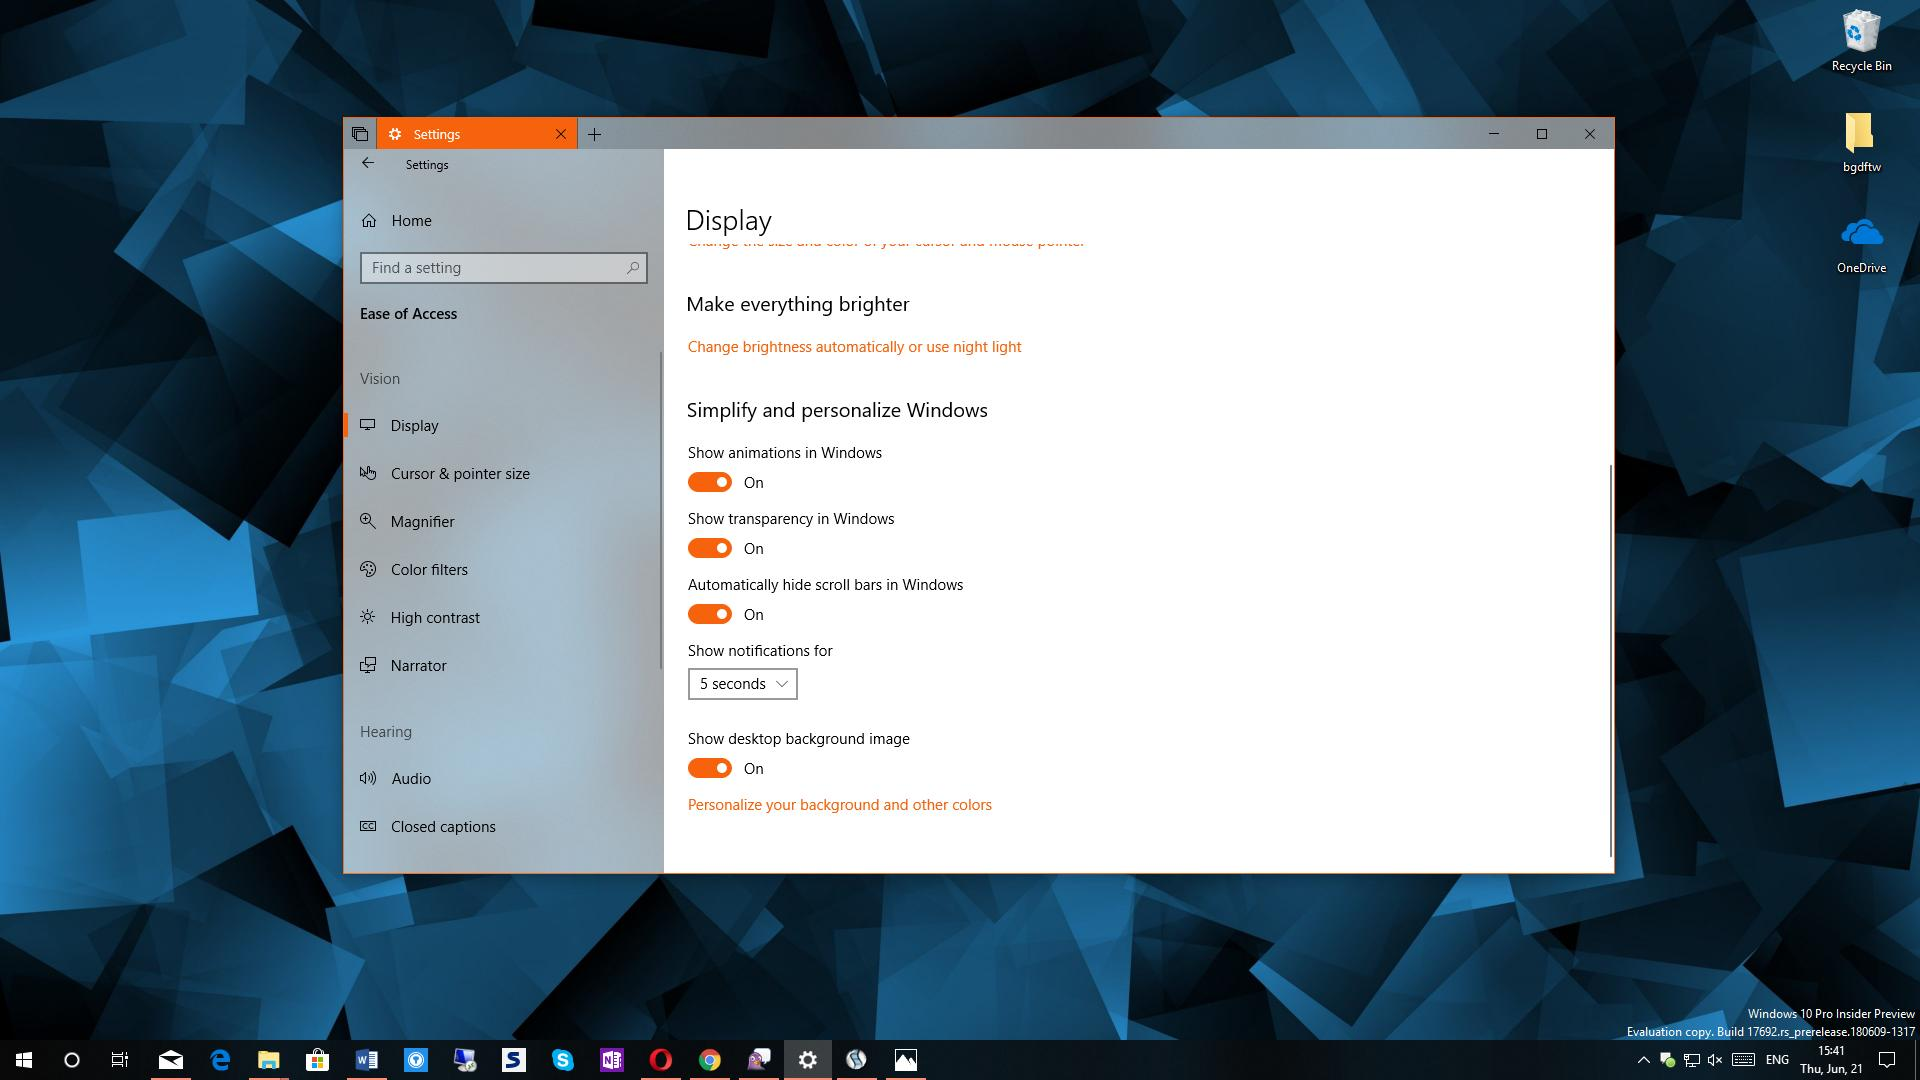 How To Completely Remove The Desktop Wallpaper In Windows 10